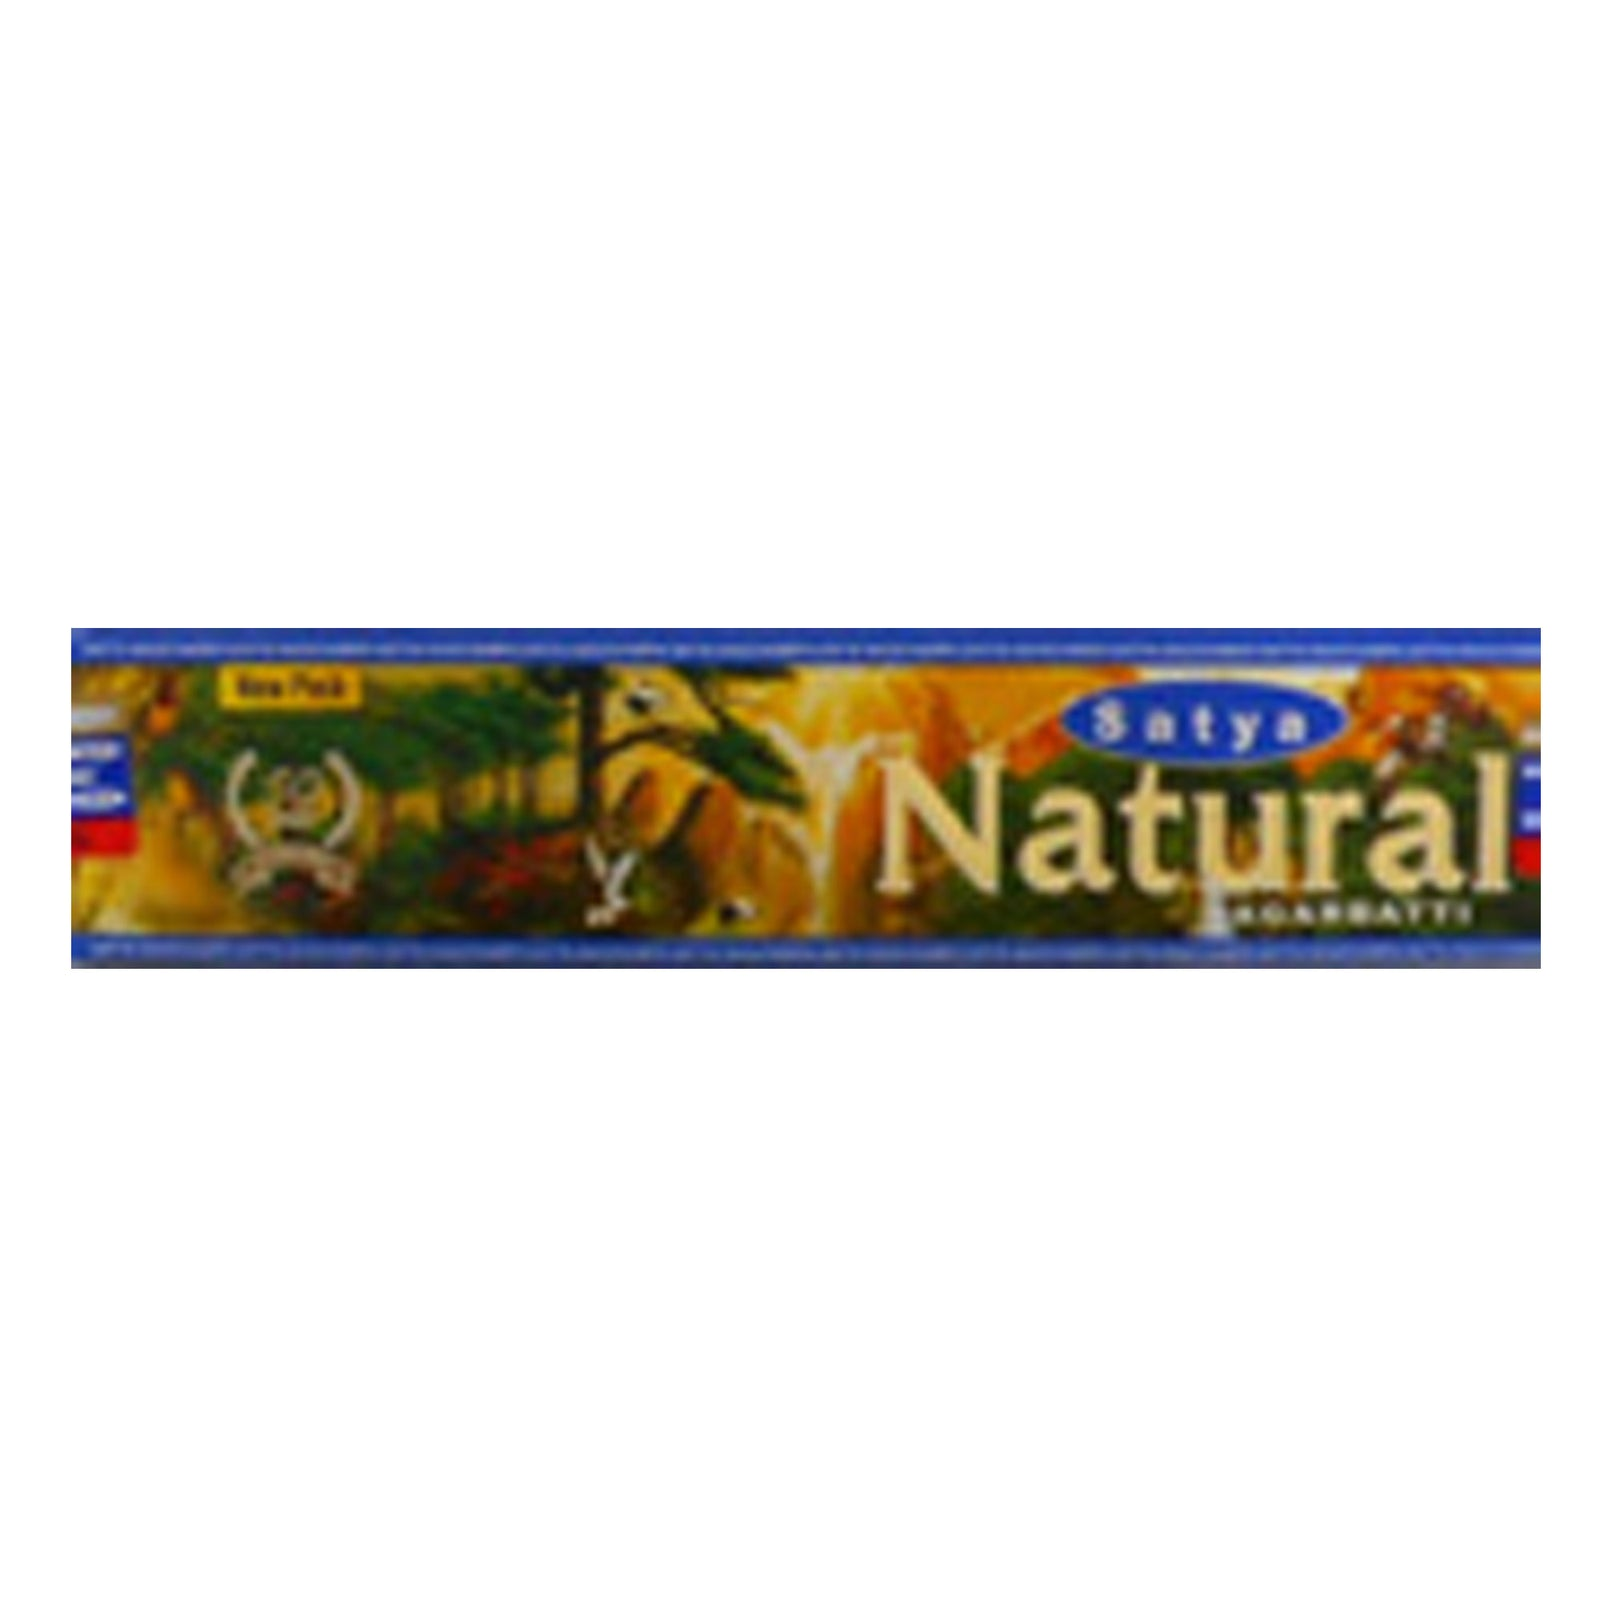 Natural Satya Sai Baba 10g Incense